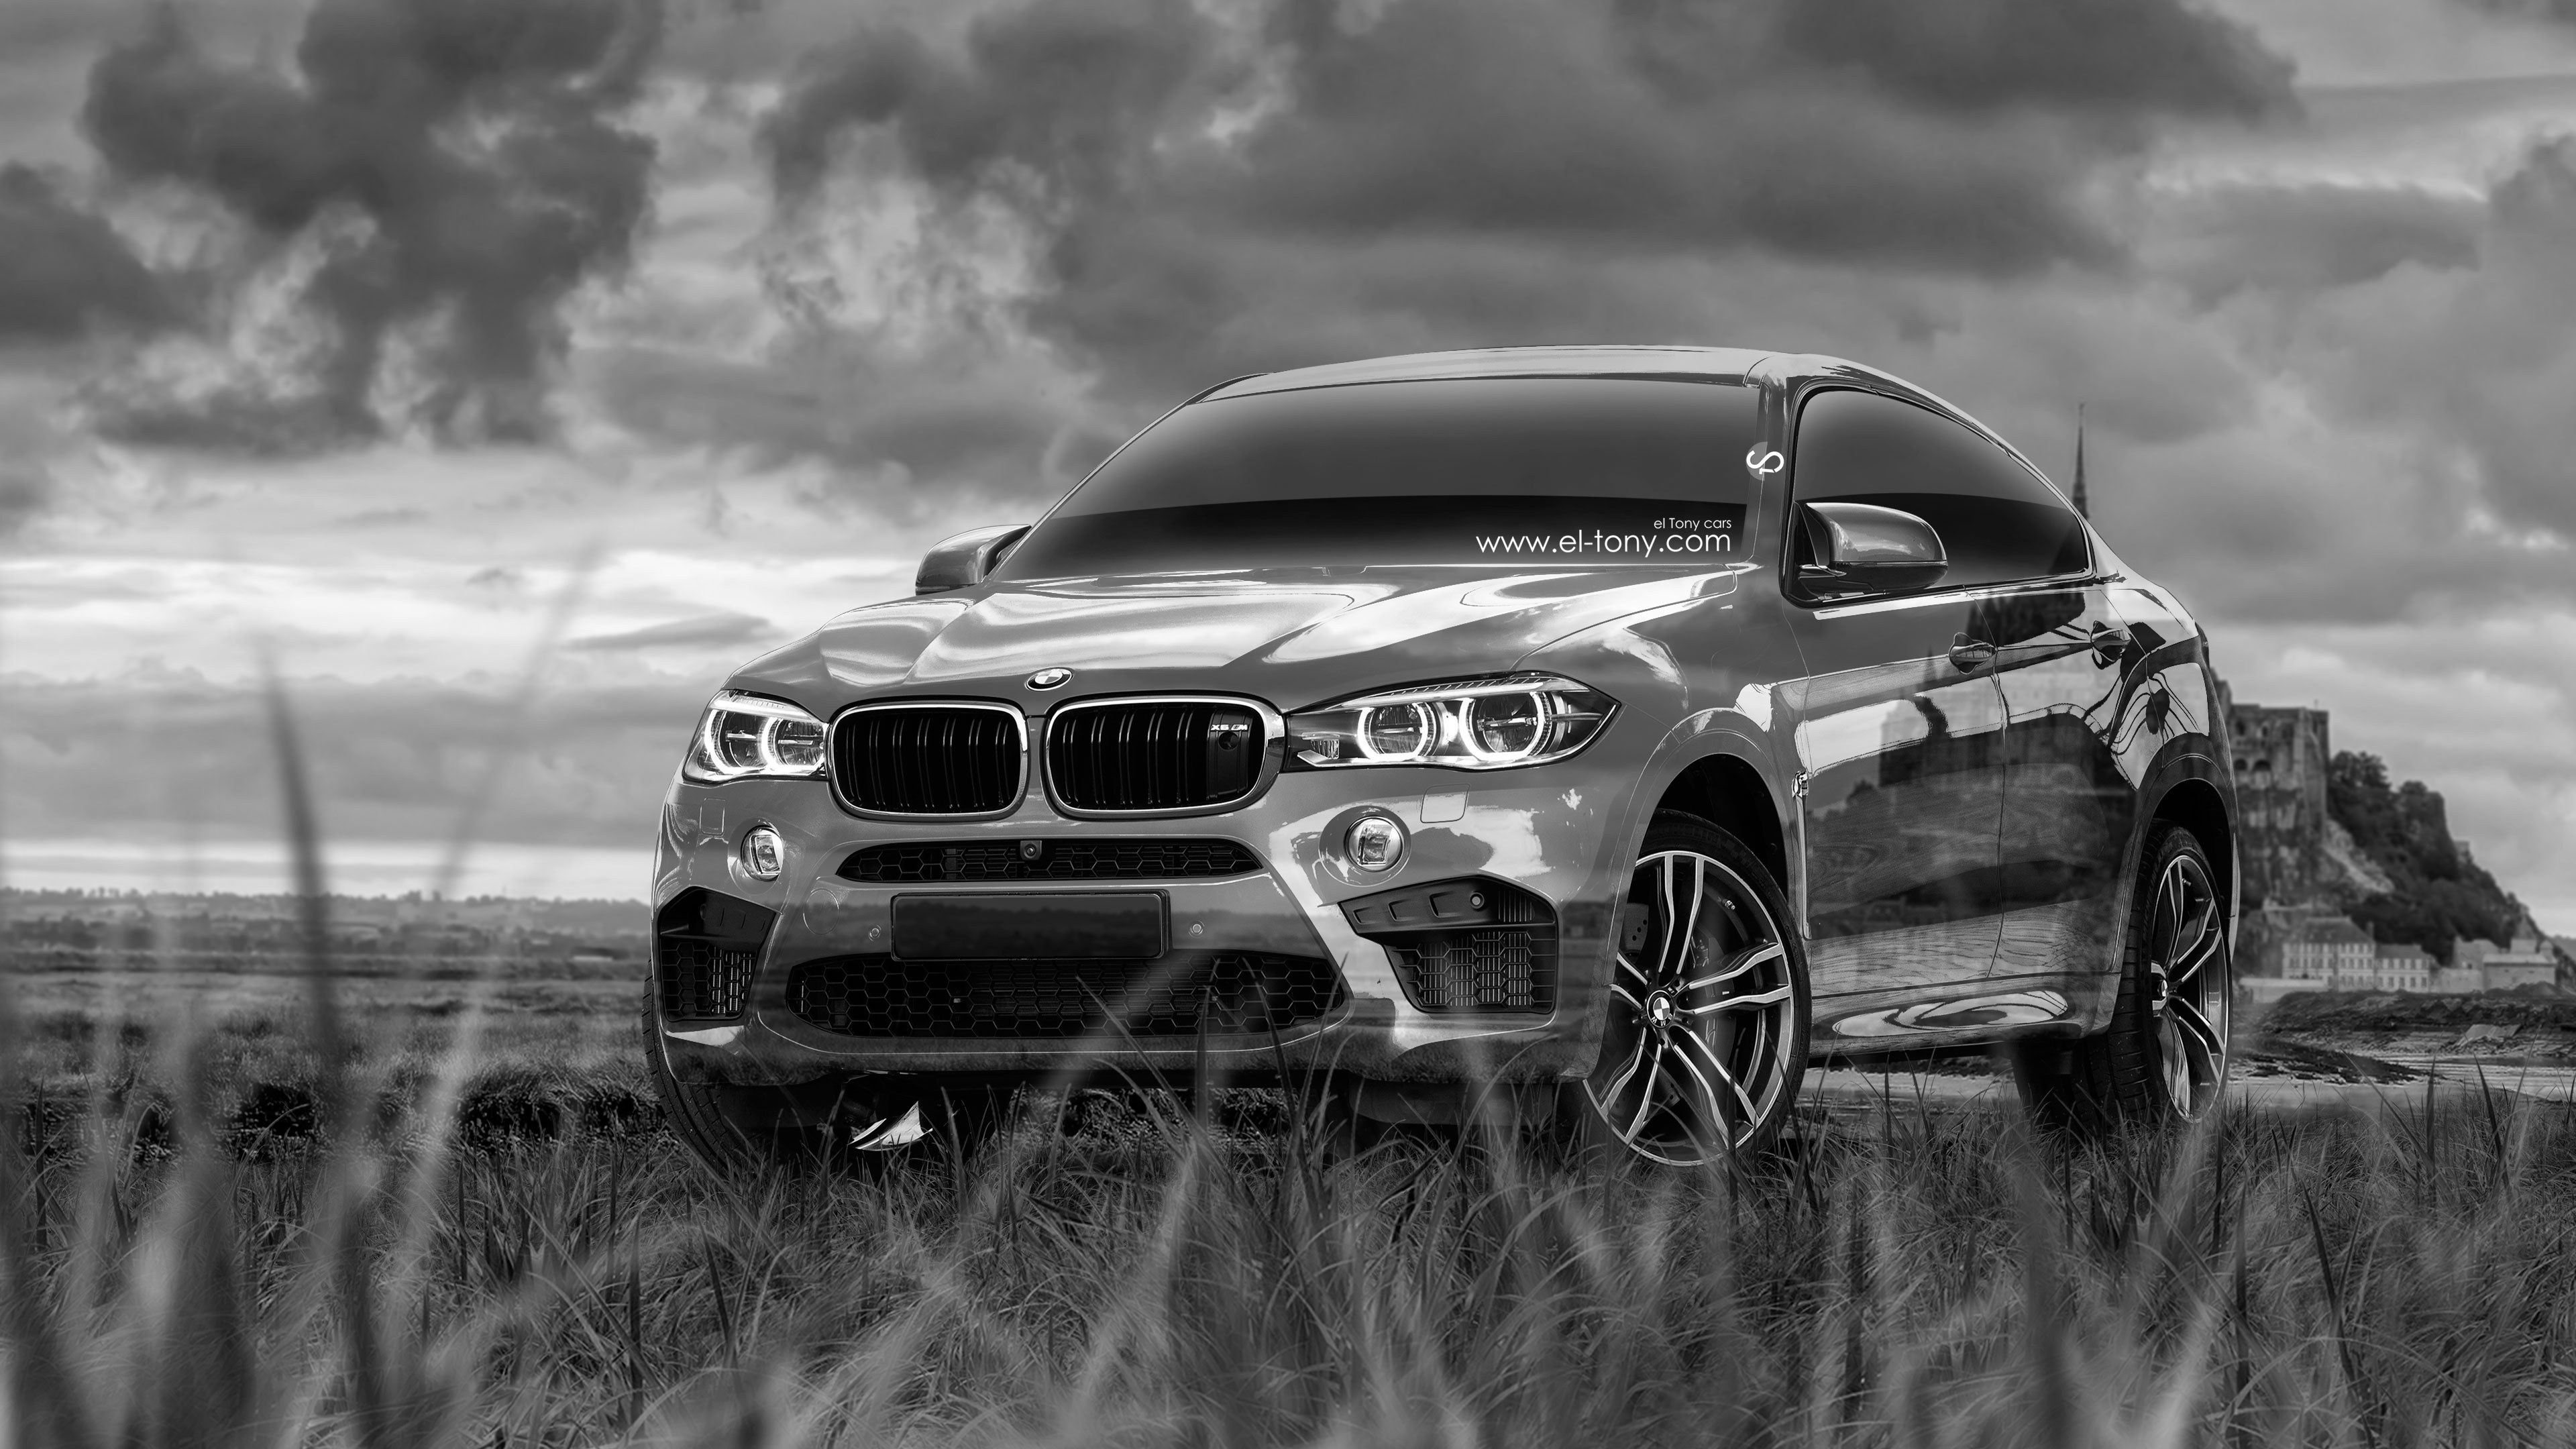 4k Bmw X6 M Crystal Nature Car 2015 El Tony